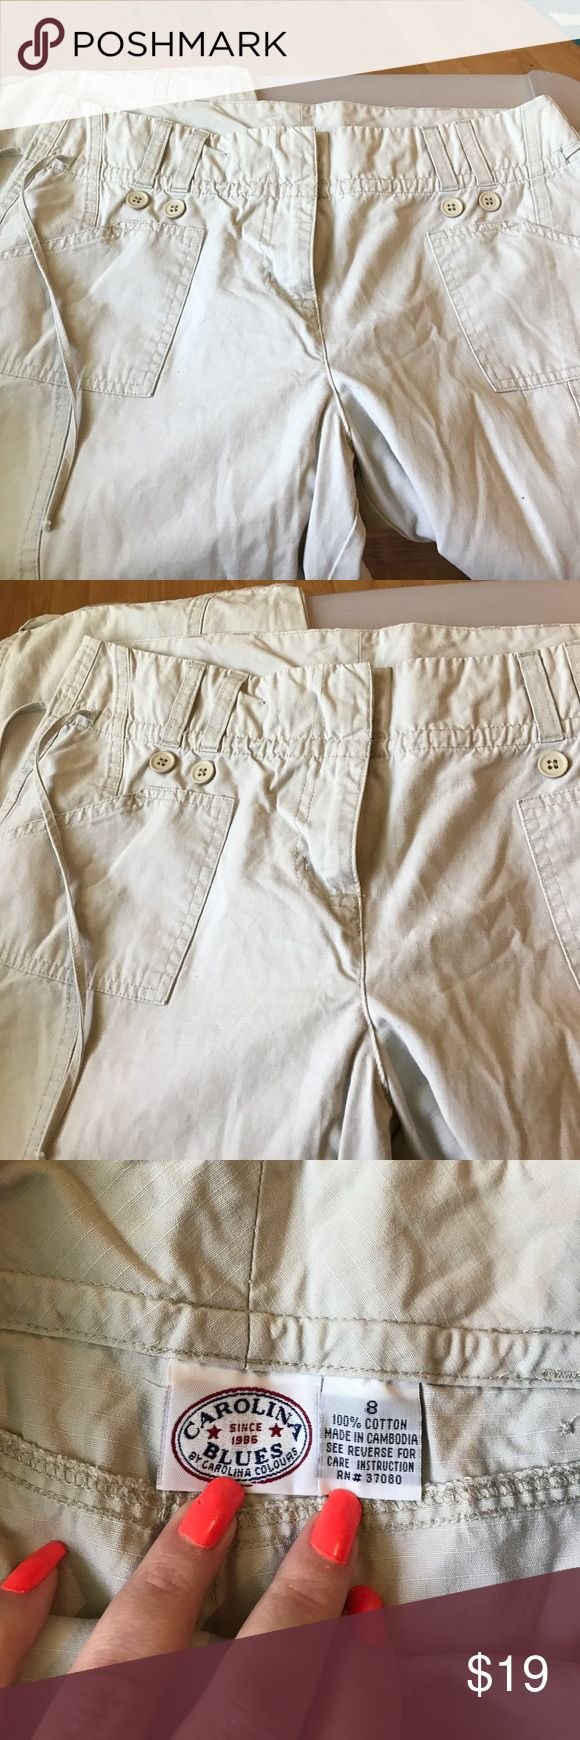 Carolina blues khaki capris. Size 8 Size 8 khaki capris, has drawstring belt that ties on size. With pockets and button detail, very cute carolina blues Pants Capris